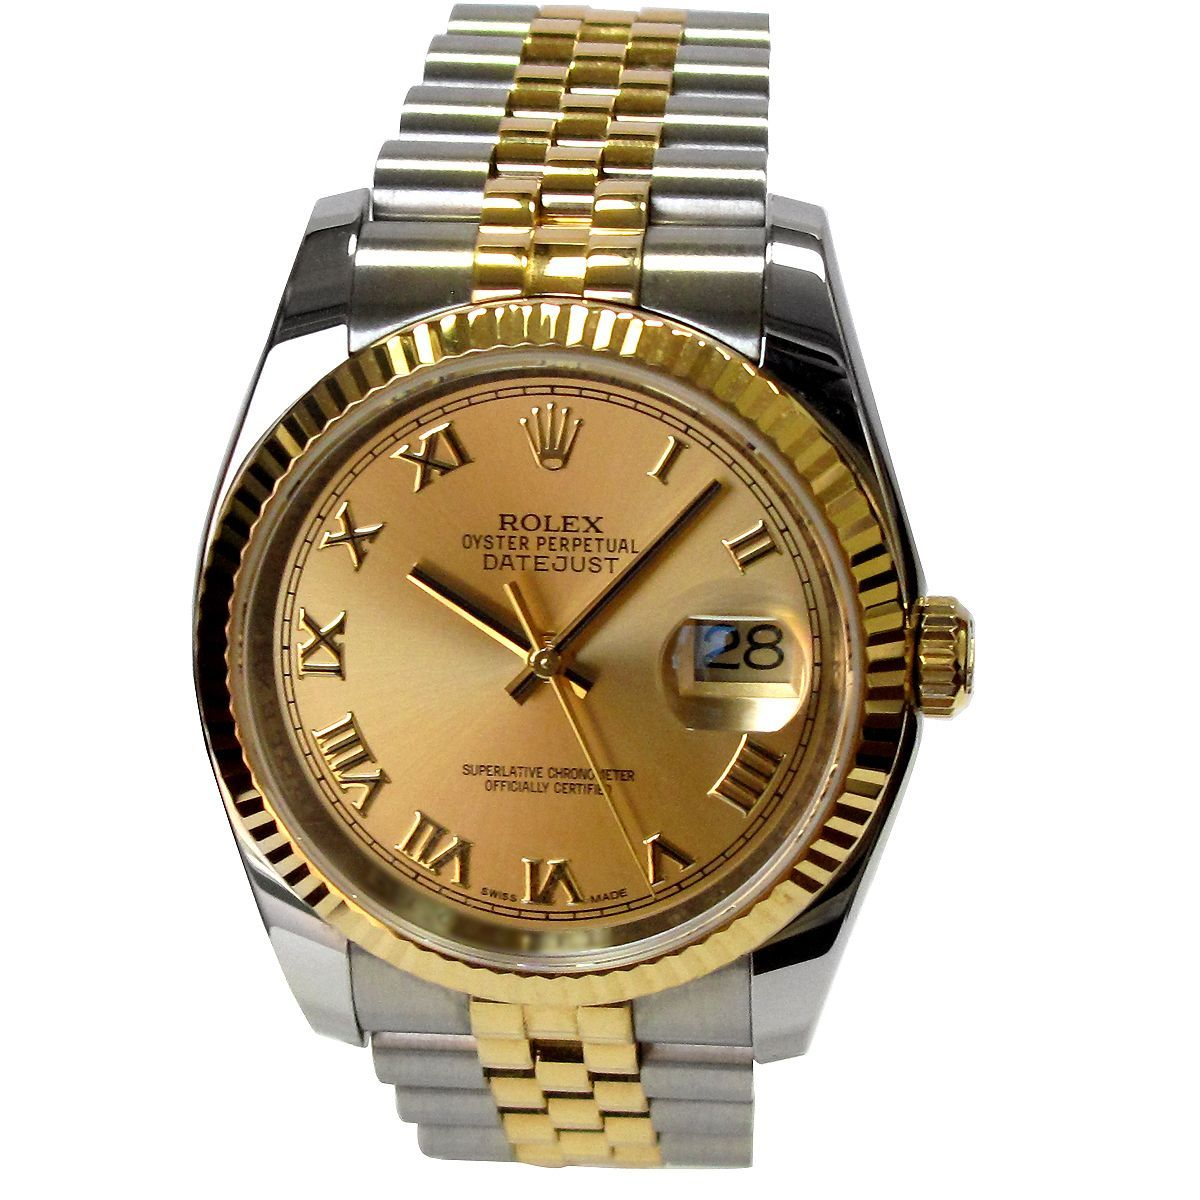 Preowned mm rolex twotone datejust watch by preowned rolex